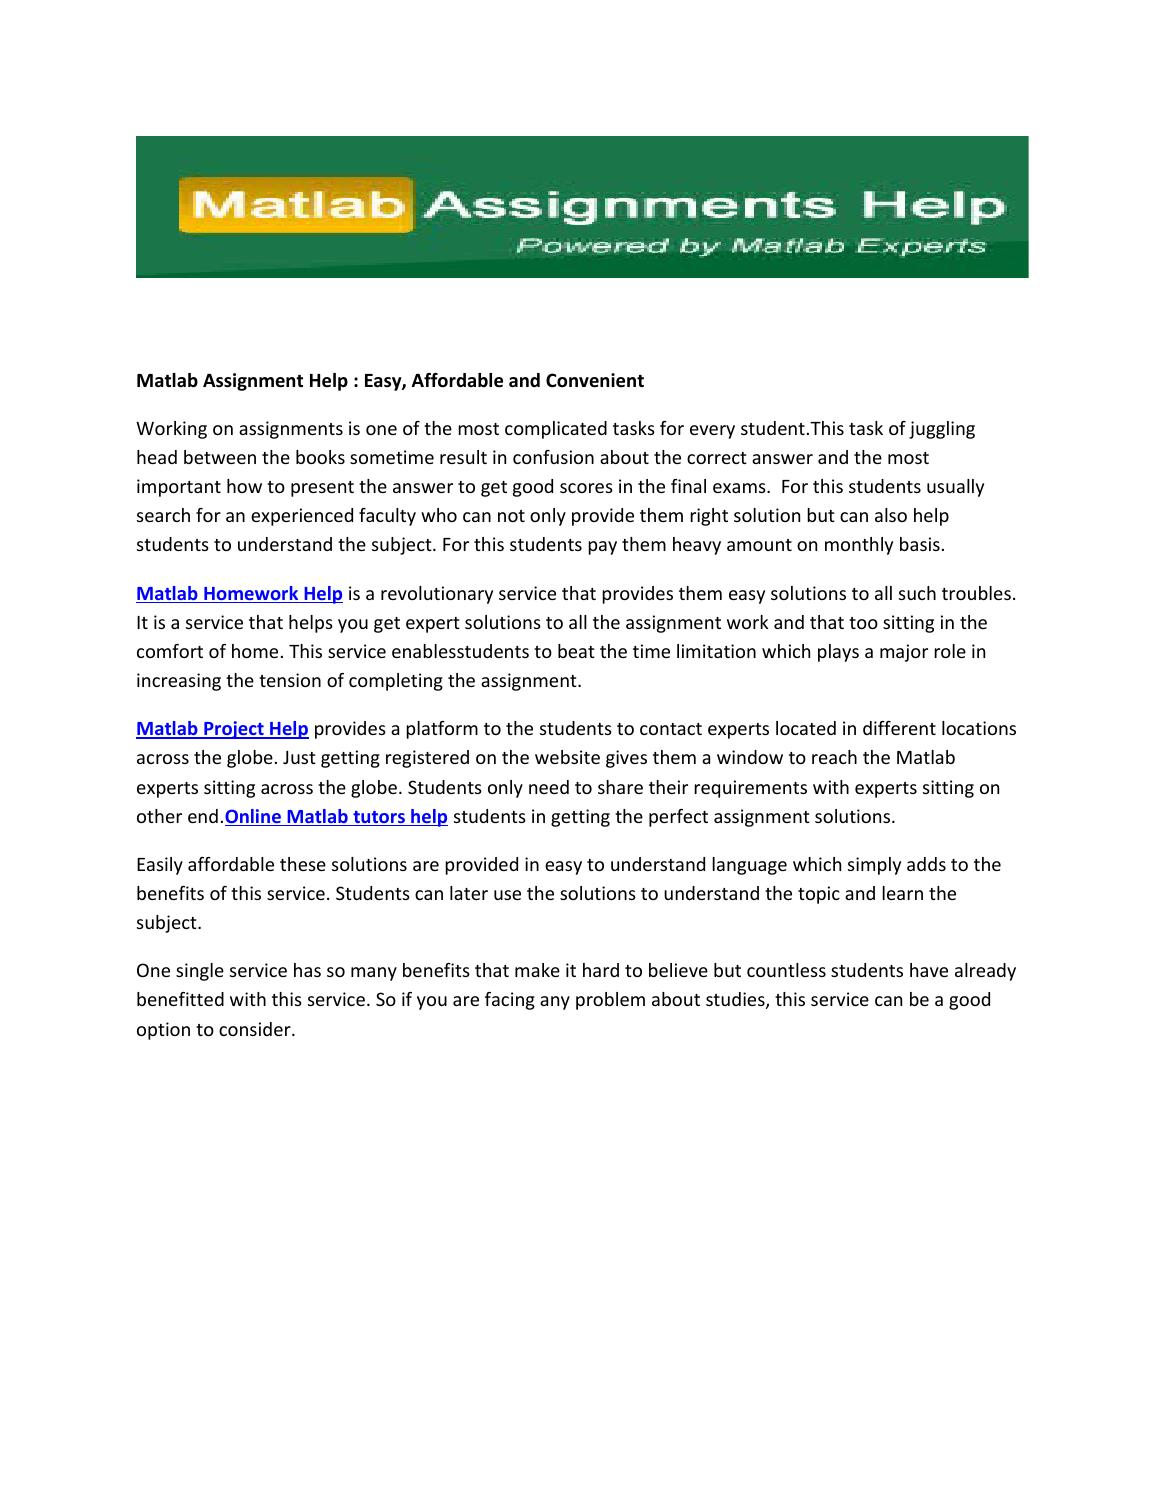 matlab assignment help easy affordable and convenient by matlab matlab assignment help easy affordable and convenient by matlab assignment help issuu